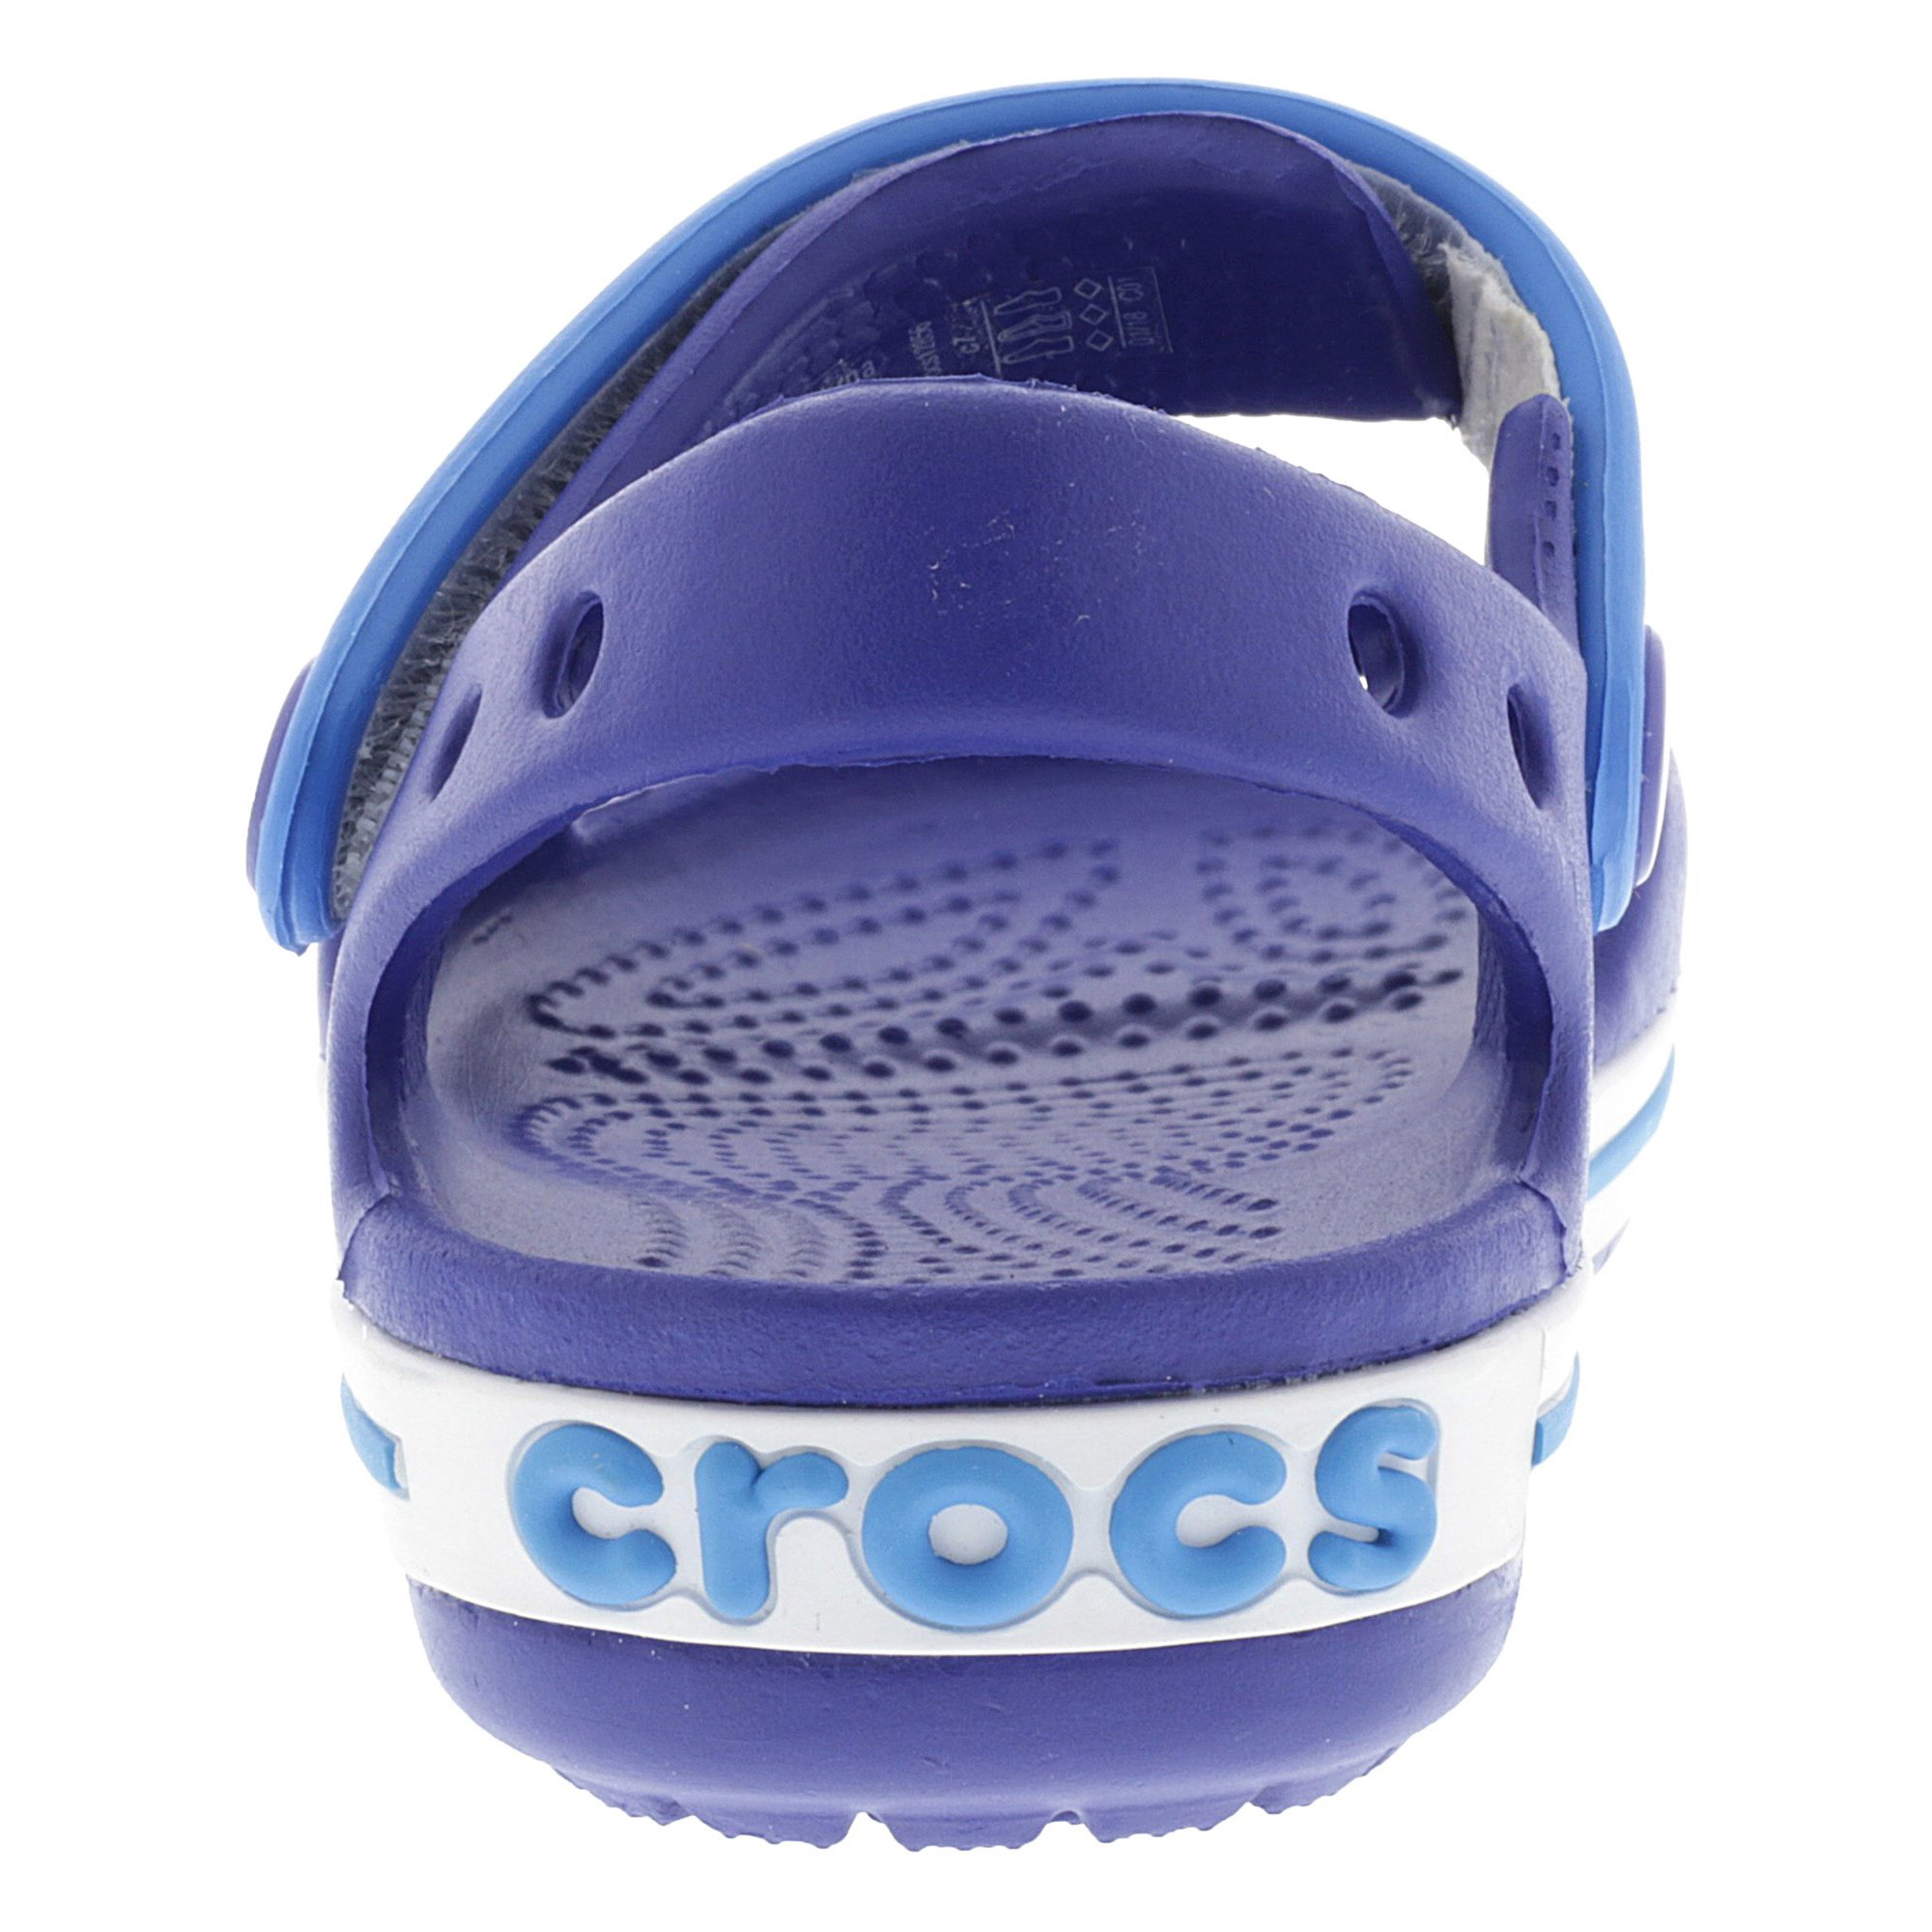 b9c29ae5d Crocs Kids Crocband Sandal Navy   Red Ankle-High - 4M